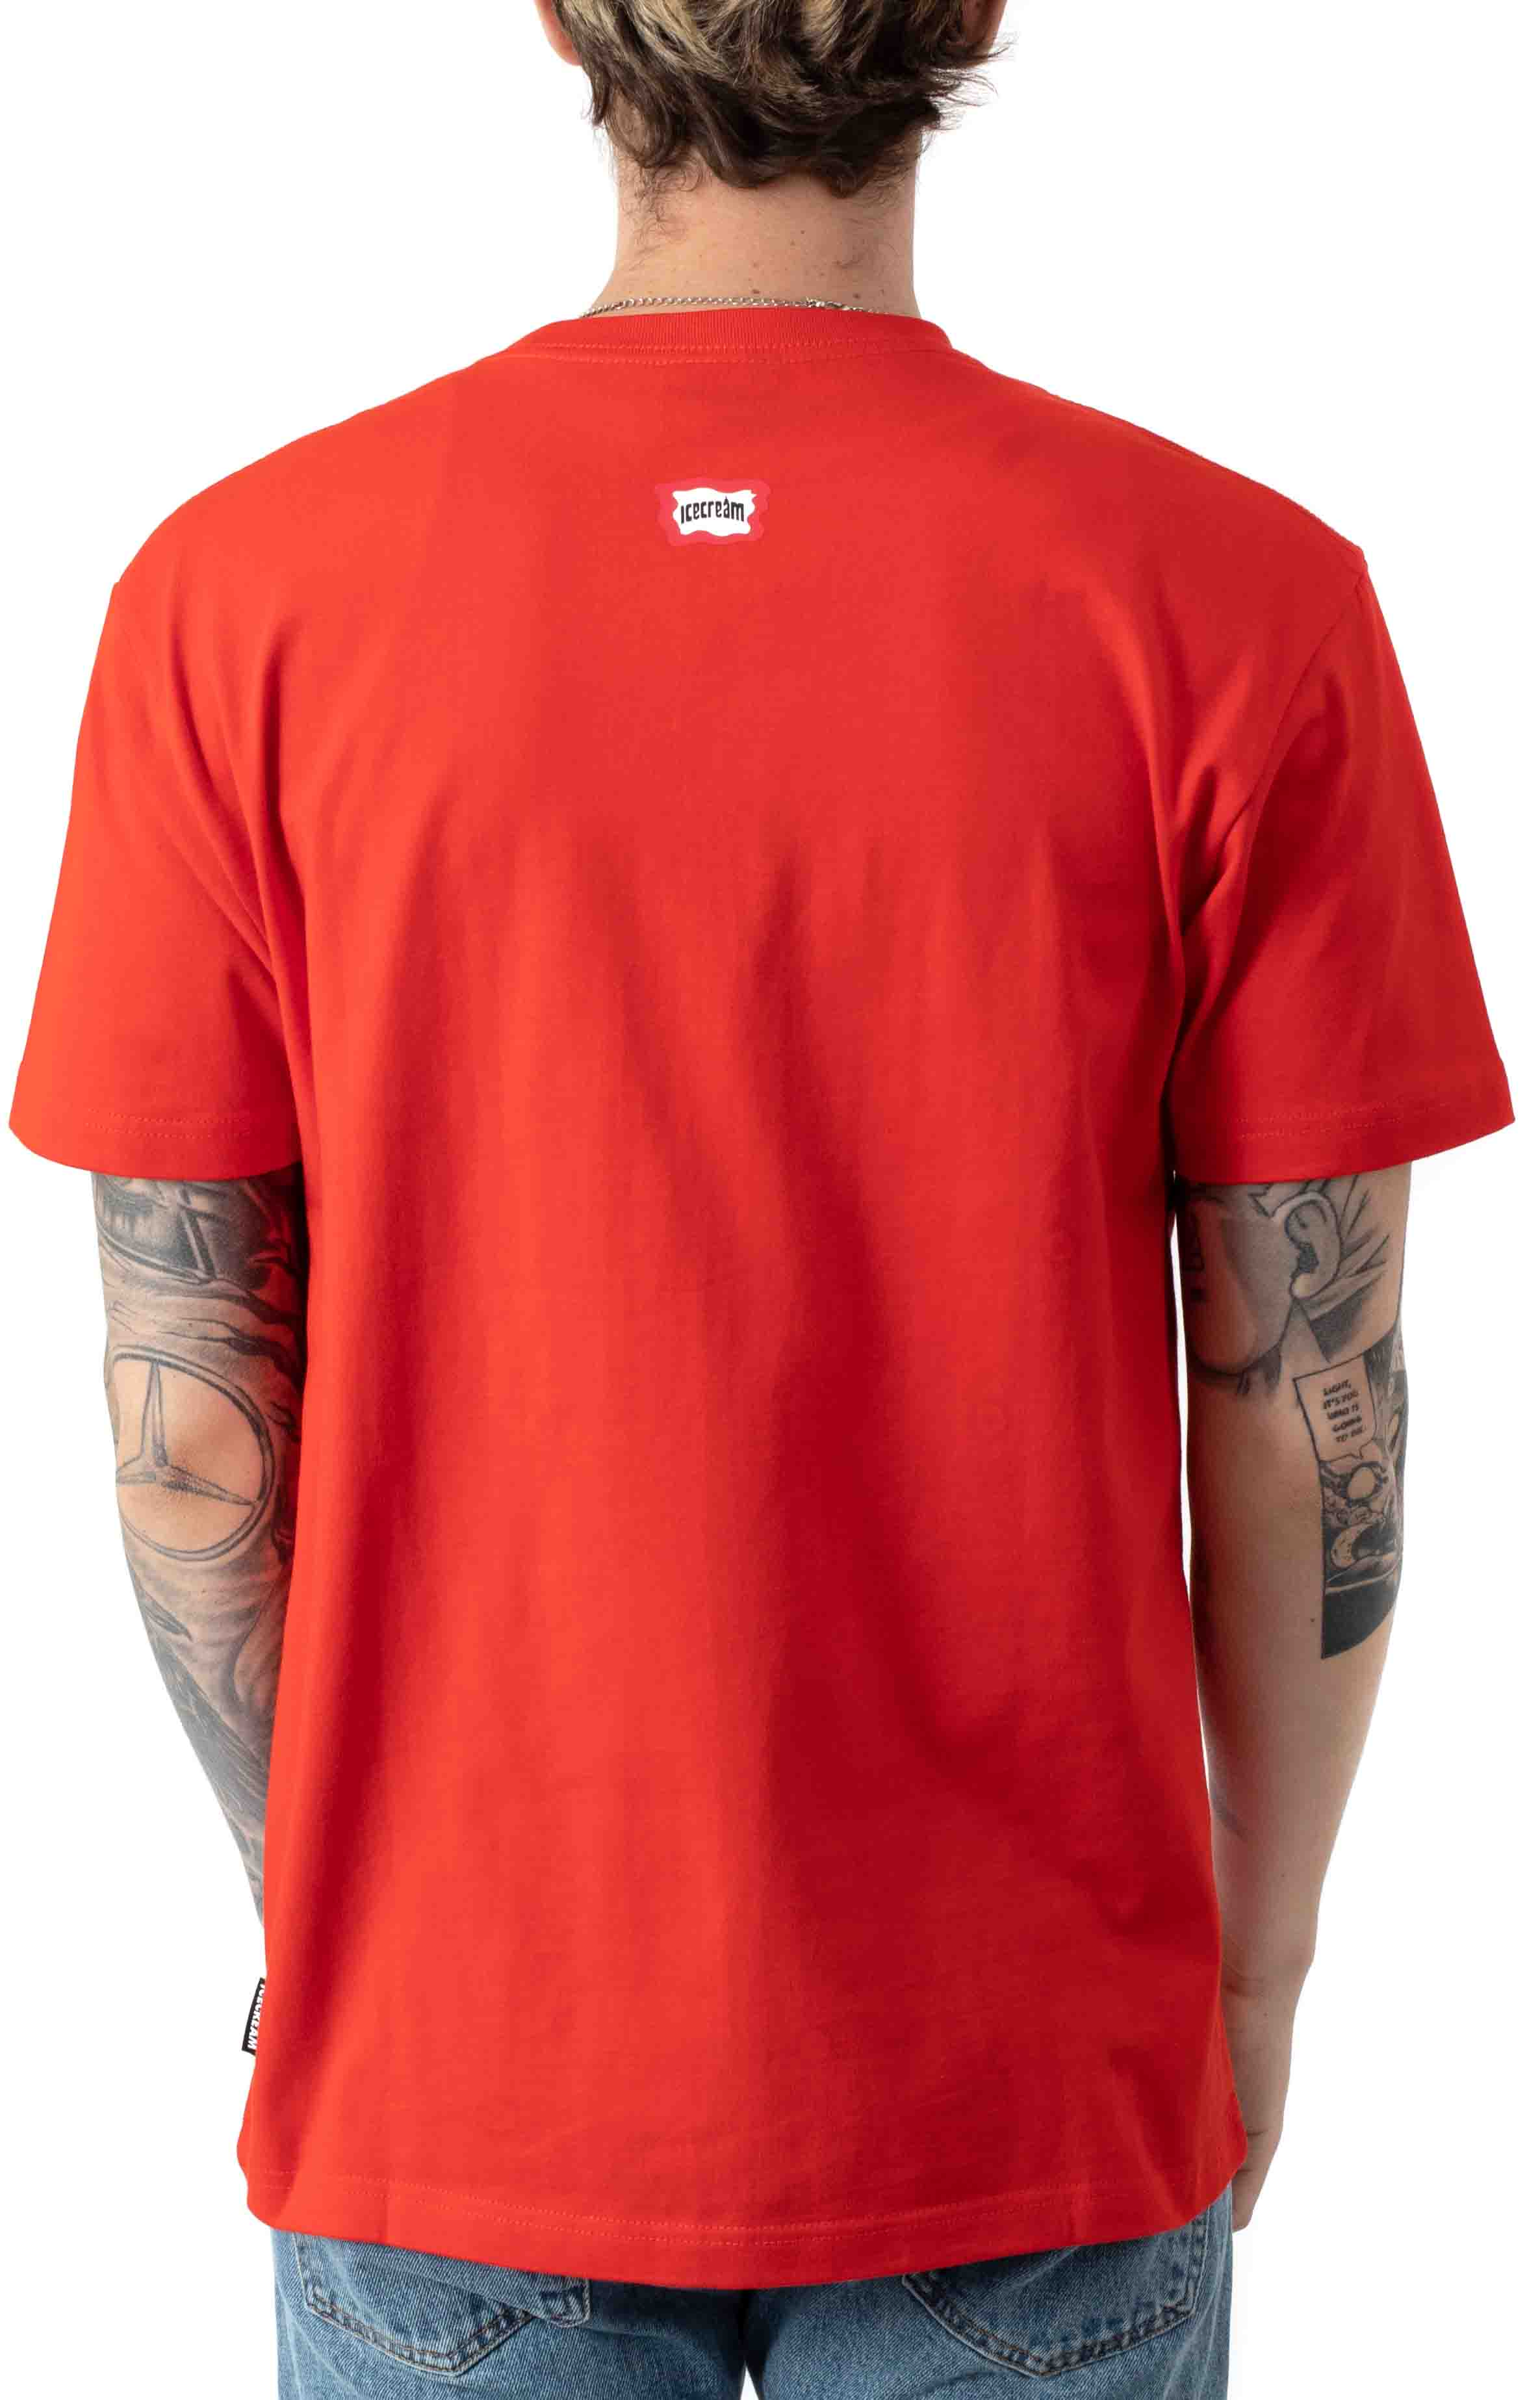 Dotty T-Shirt - Fiery Red  3